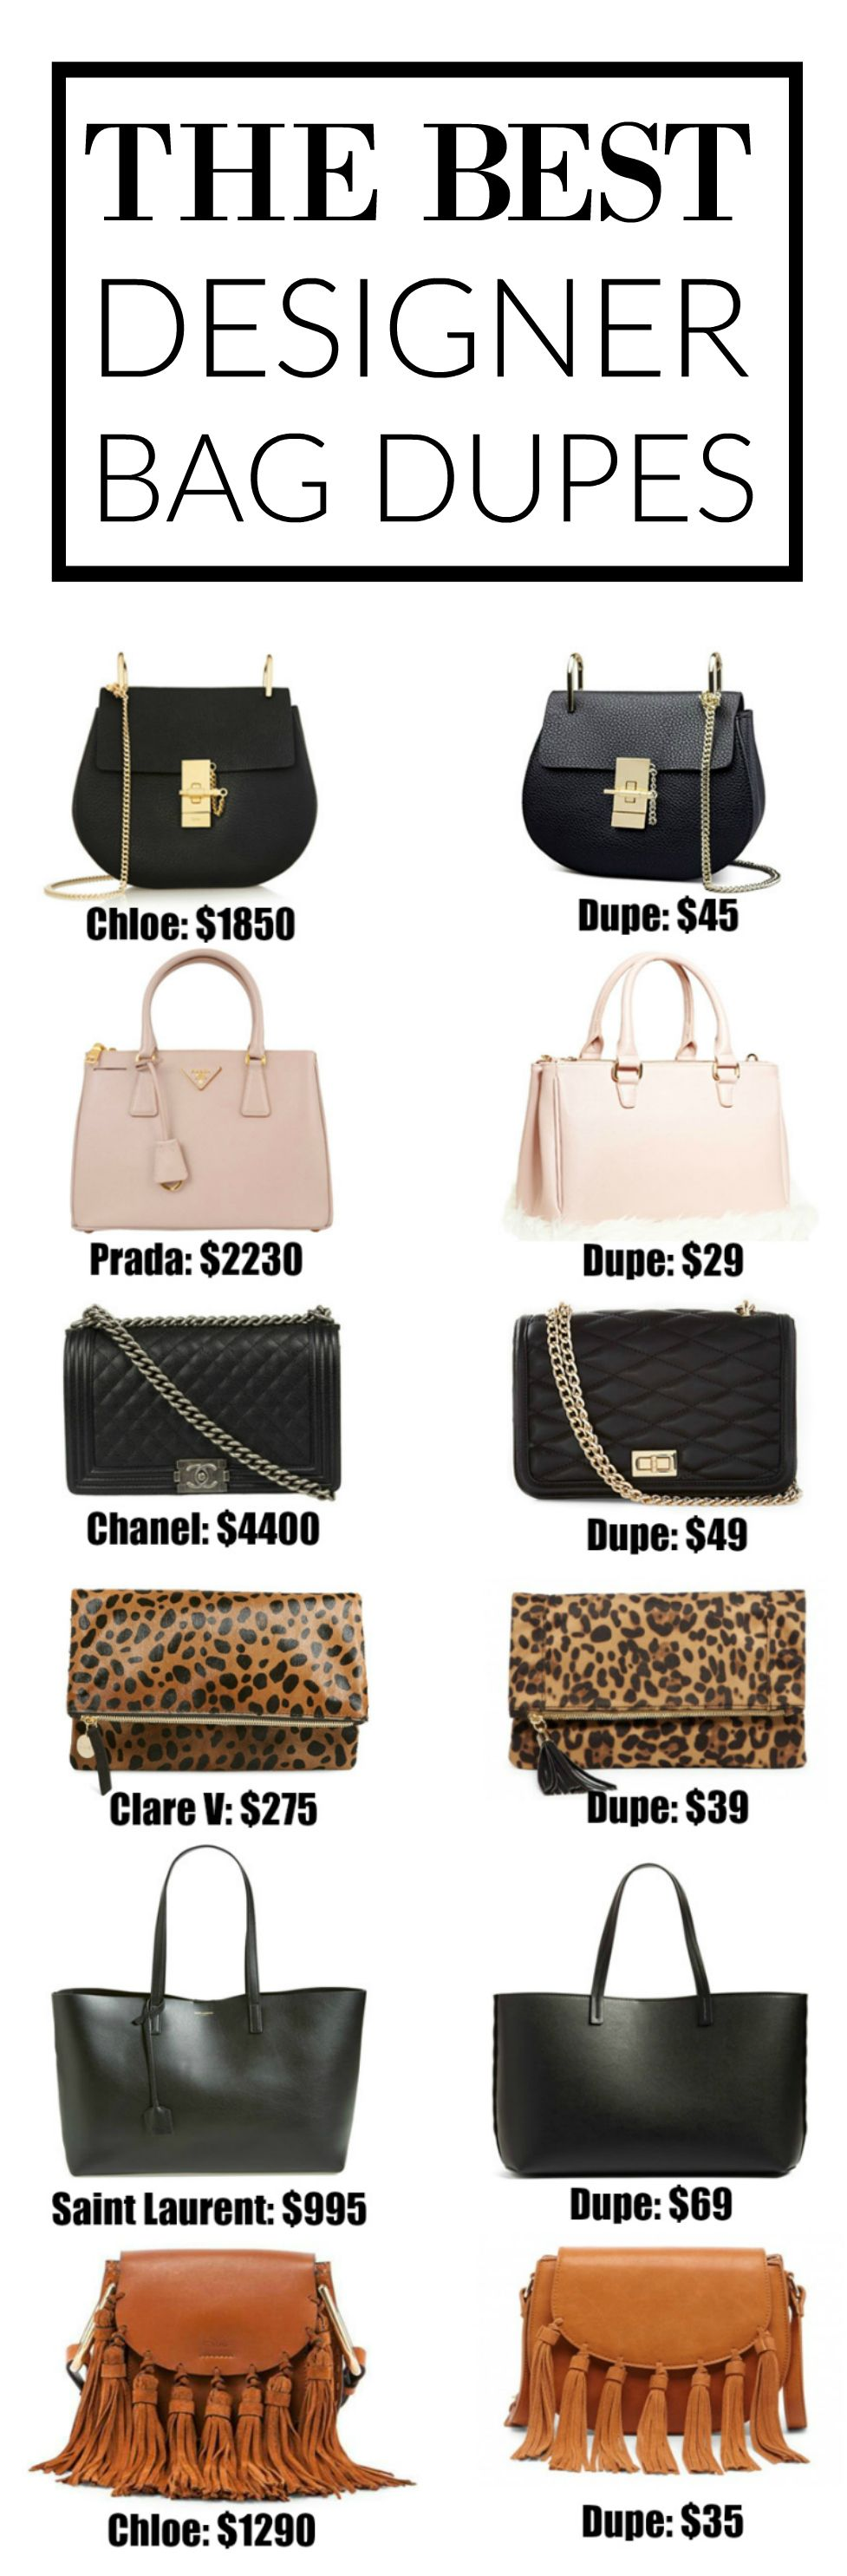 The Ultimate Designer Bag Dupes Guide | The InfluenceHer Collective ...